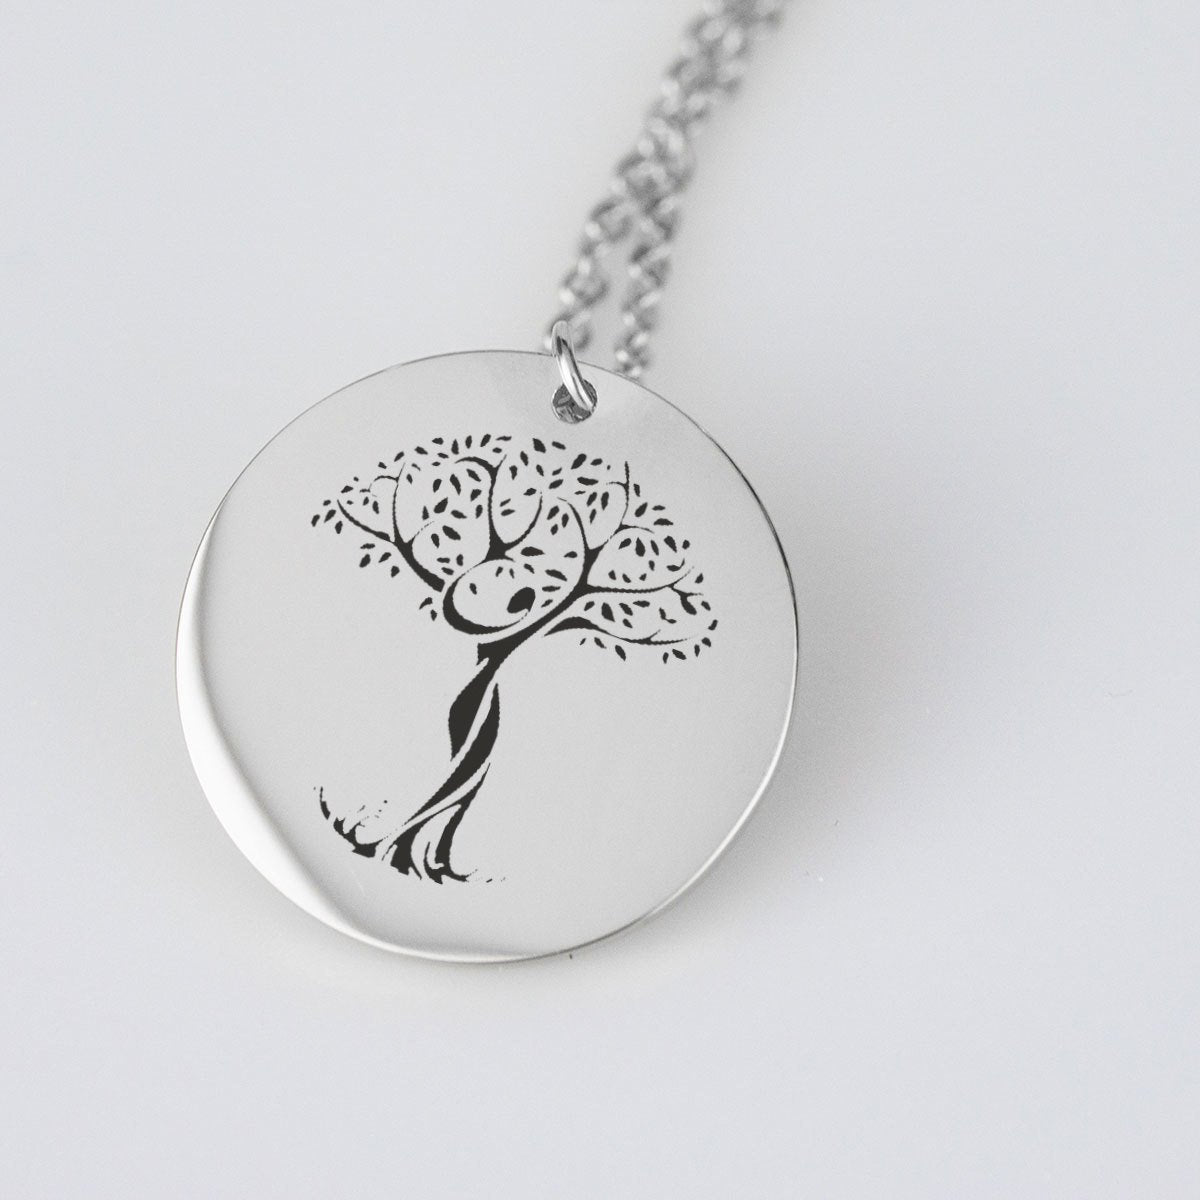 Collar Arbol de la Vida -Under A Tree Meditation - Gold Pendant